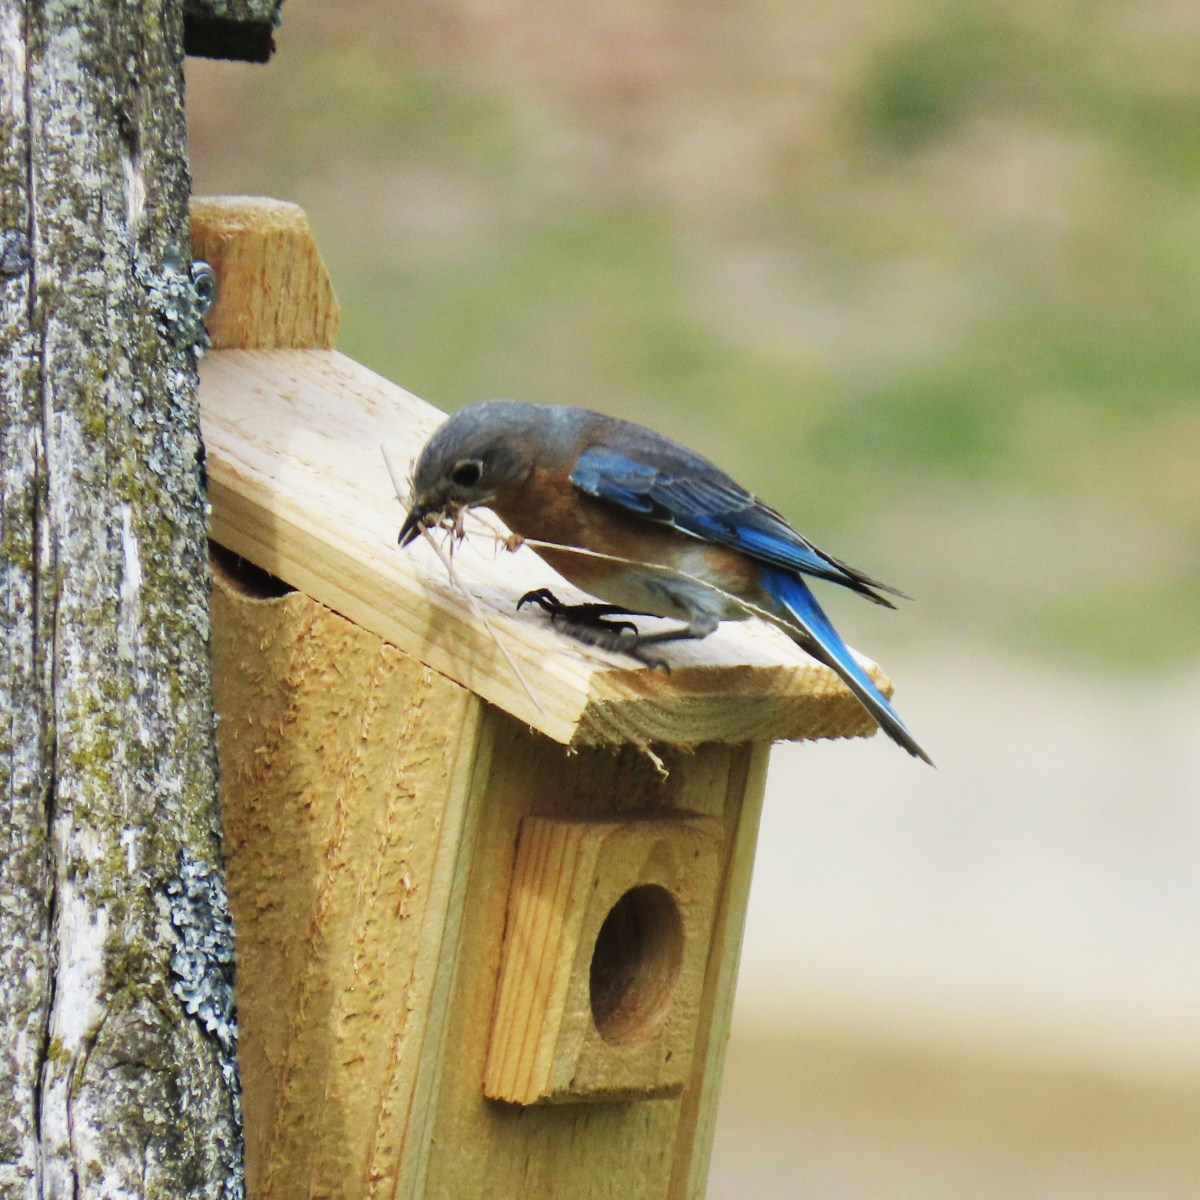 A female Eastern Bluebird stands on a bluebird box with a mouth full of small twigs